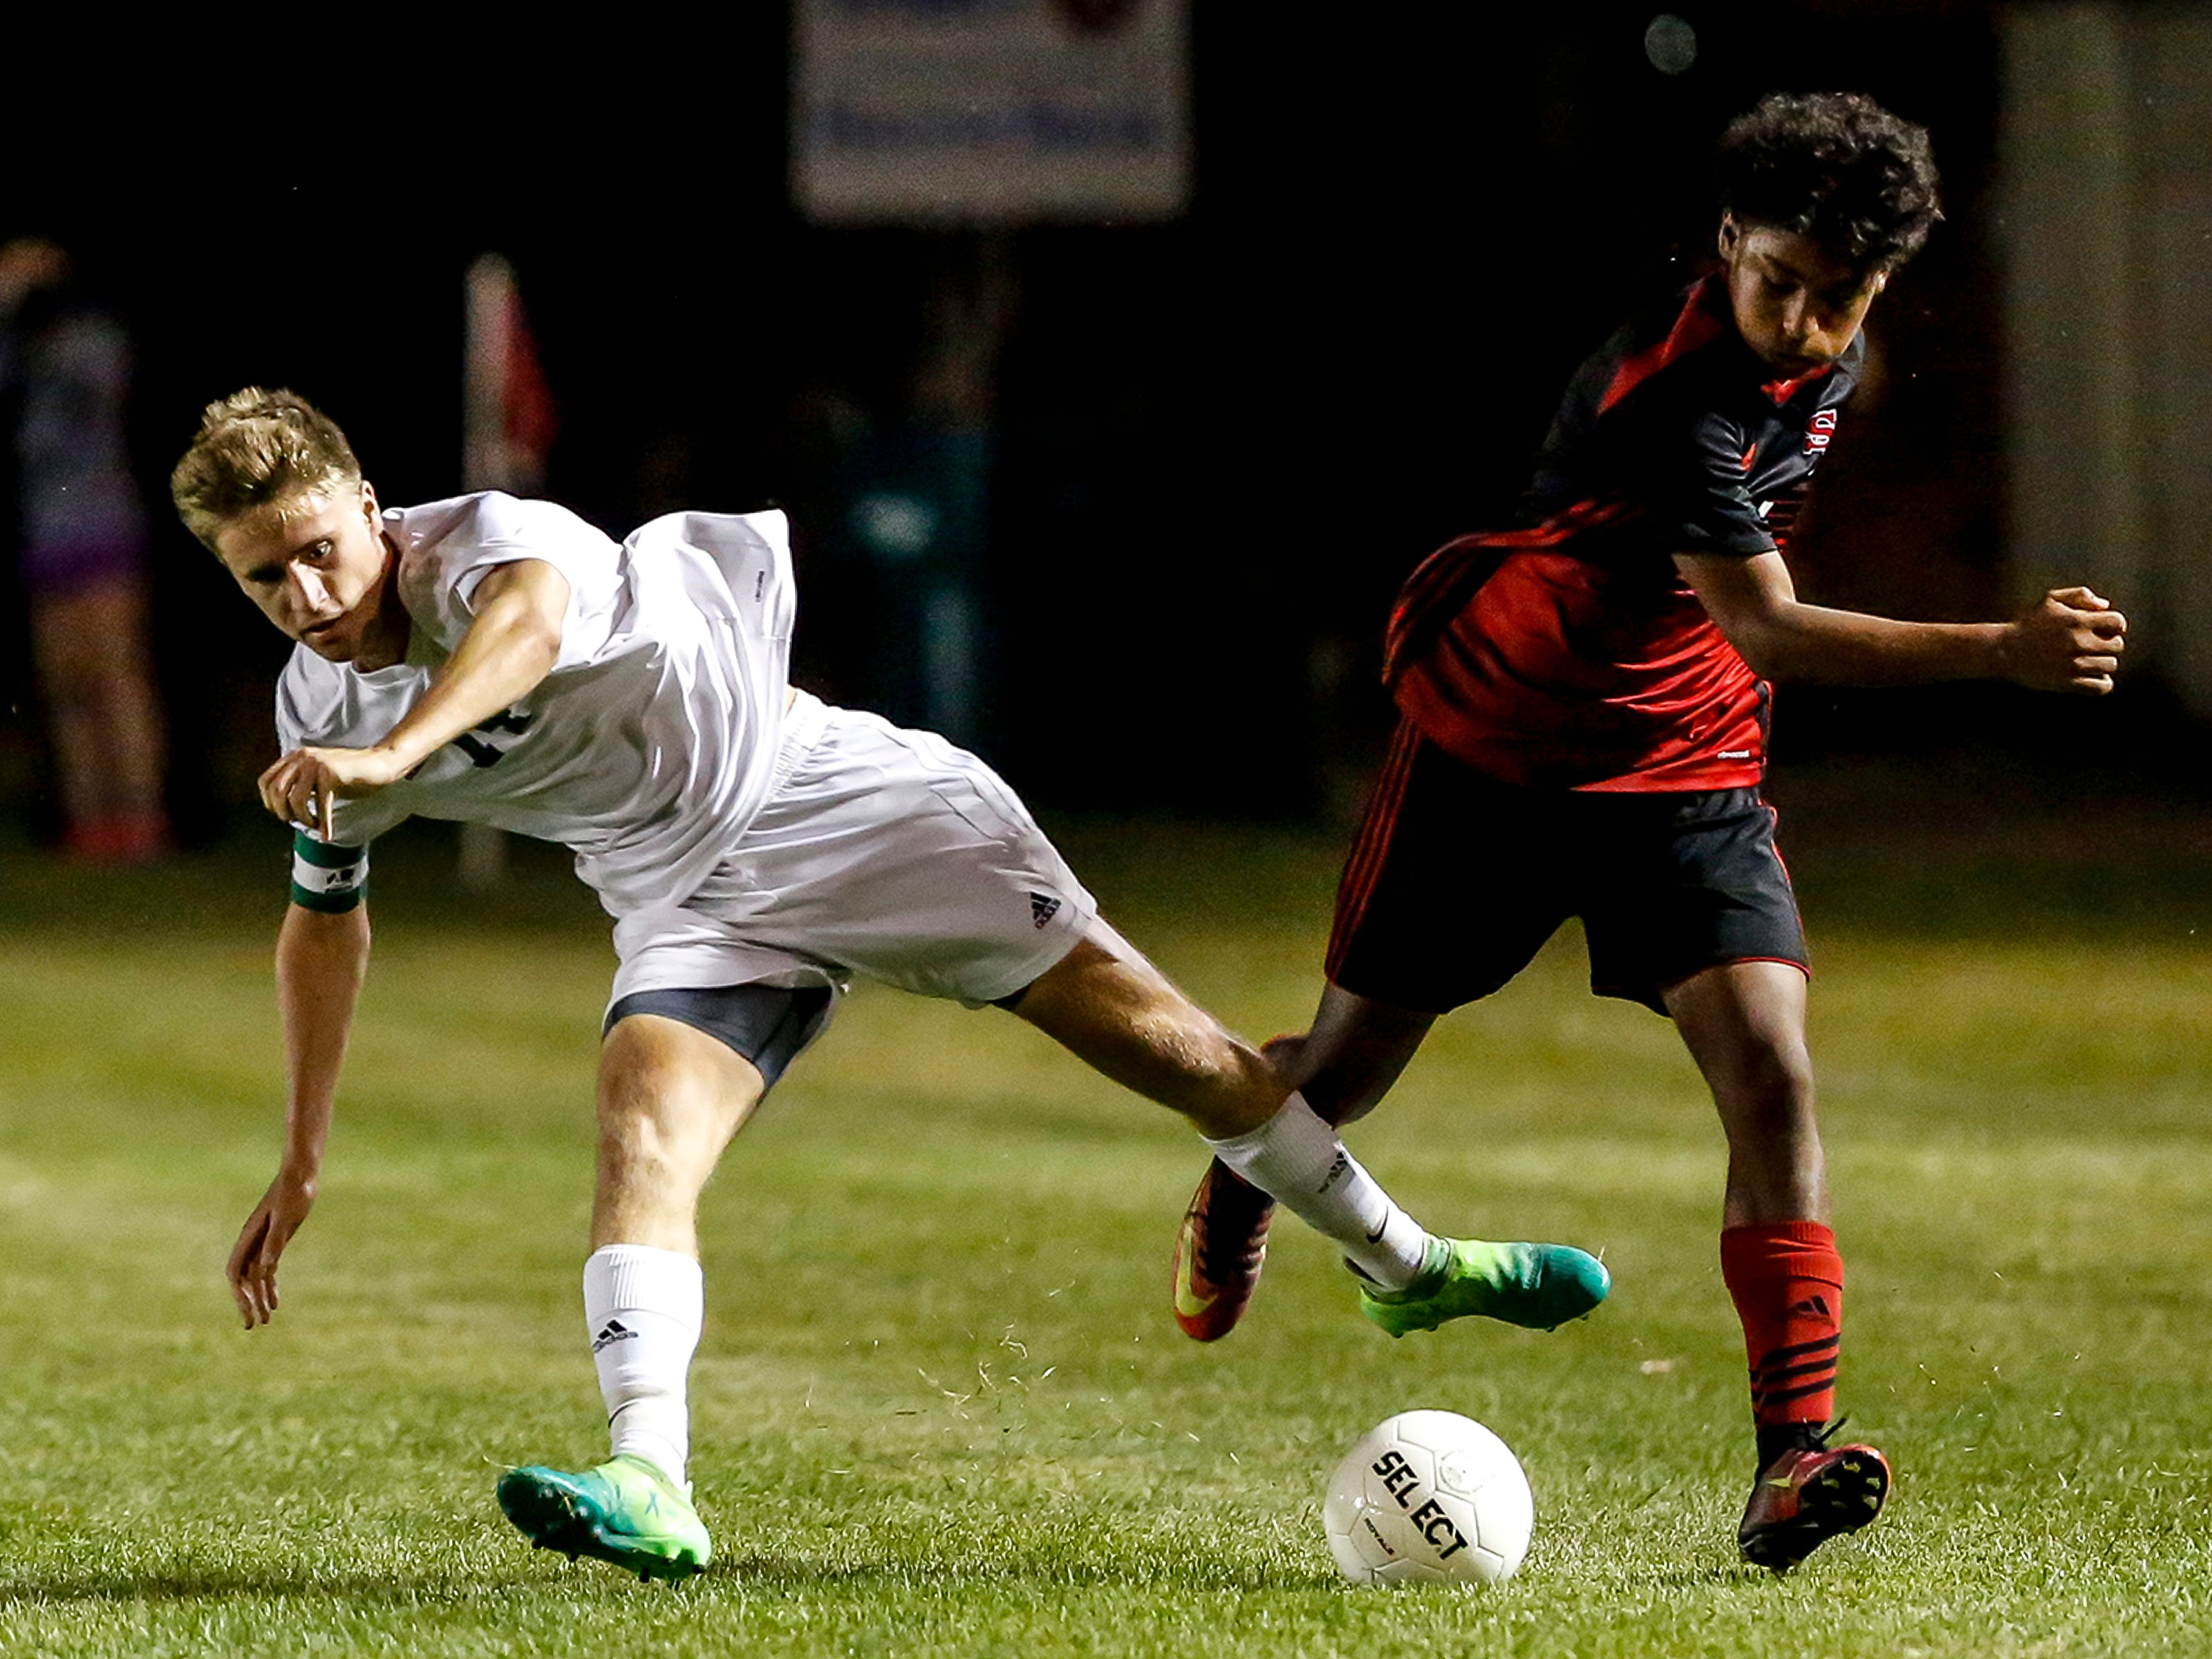 Ethan Stashek of D.C. Everest and Lio Perkins collide while fighting for possession during a soccer game between SPASH and D.C. Everest in Stevens Point, Wis., September 13, 2018.